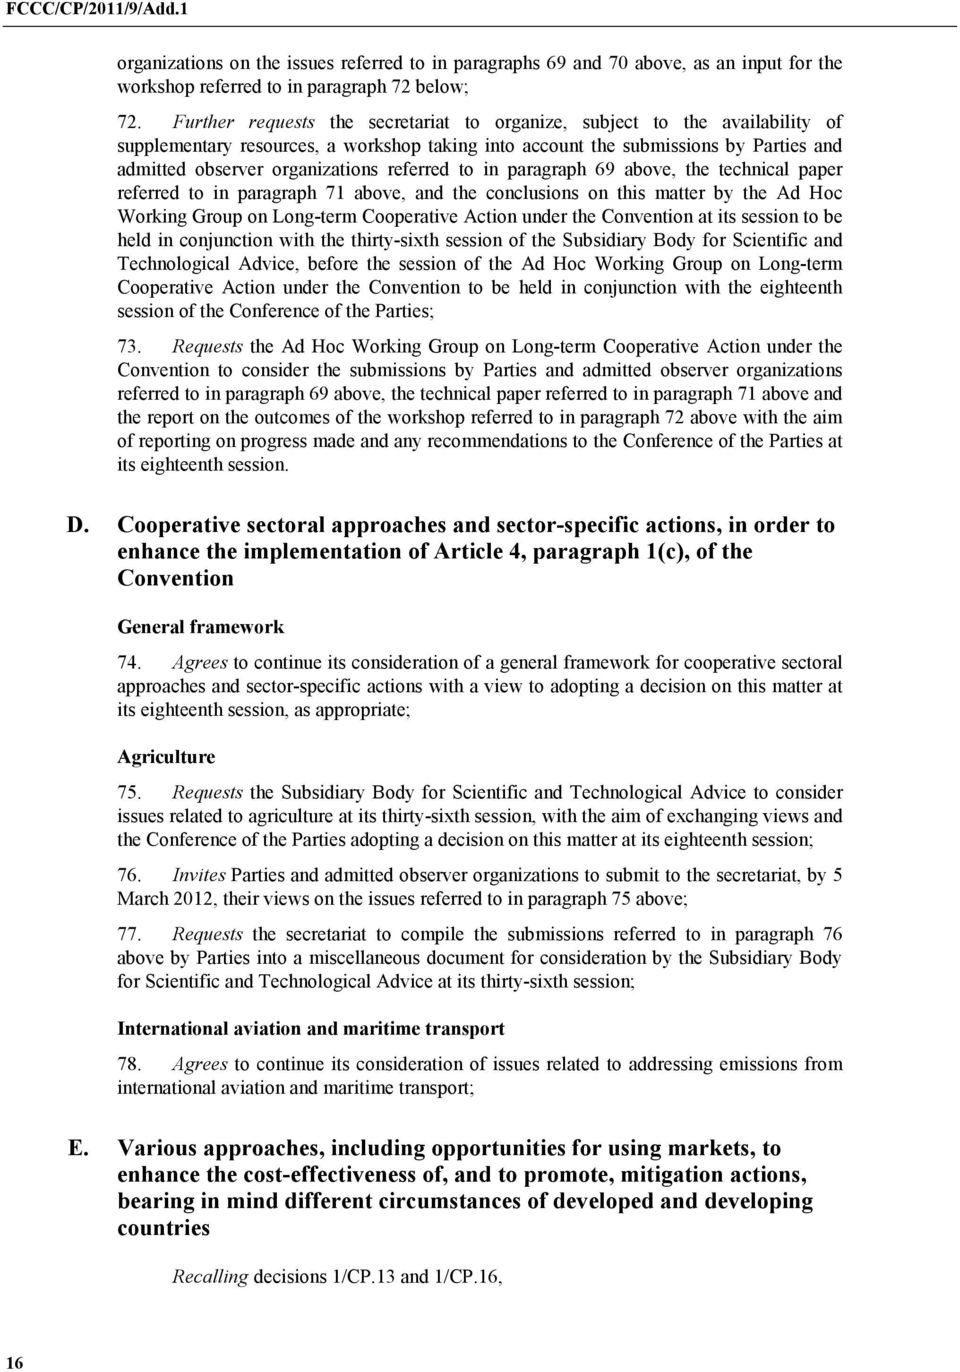 referred to in paragraph 69 above, the technical paper referred to in paragraph 71 above, and the conclusions on this matter by the Ad Hoc Working Group on Long-term Cooperative Action under the